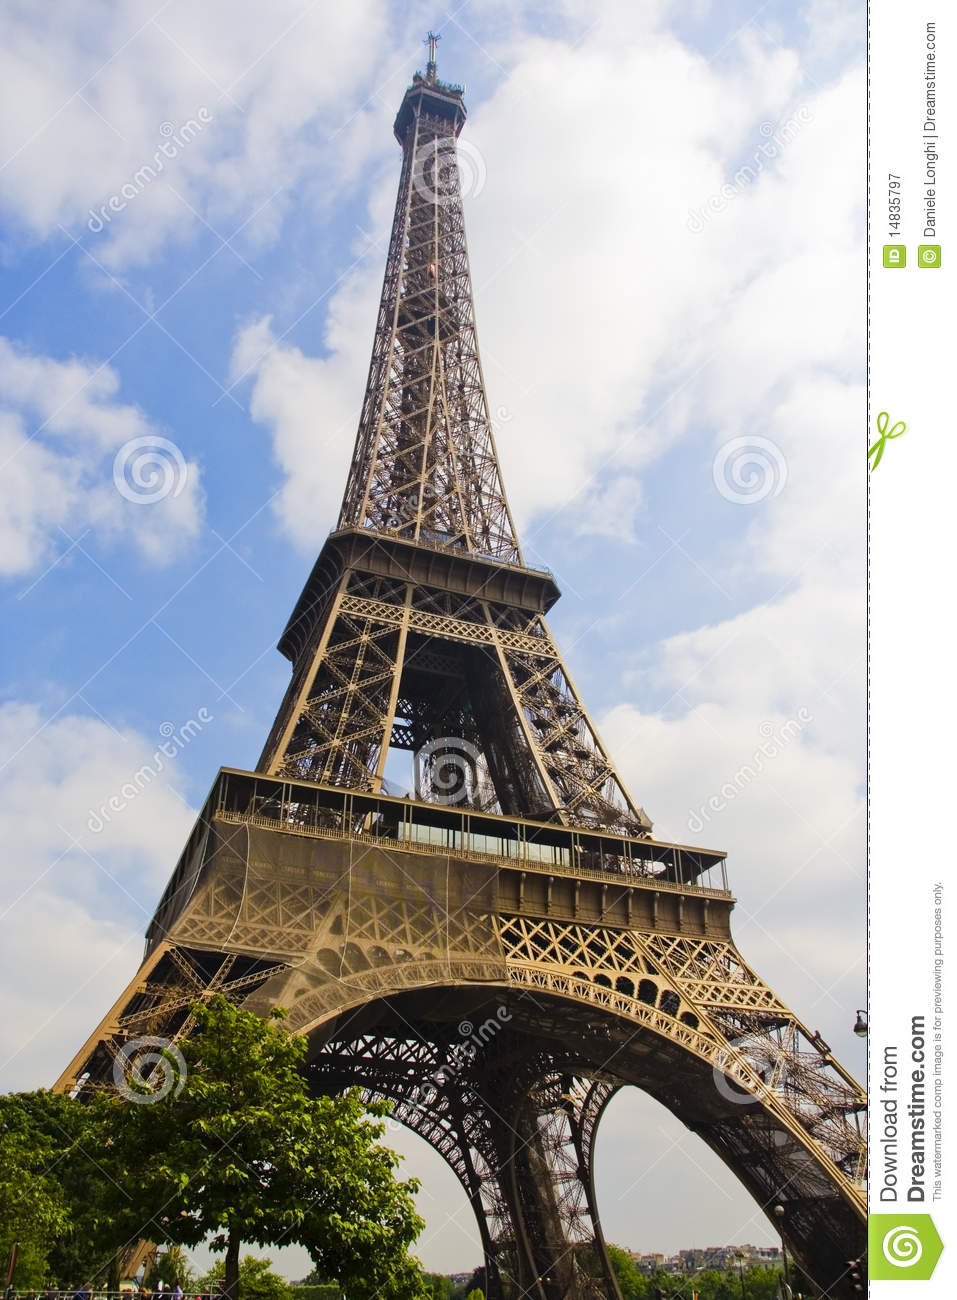 Tour eiffel paris stock image image of icon famous - Tour eiffel image ...